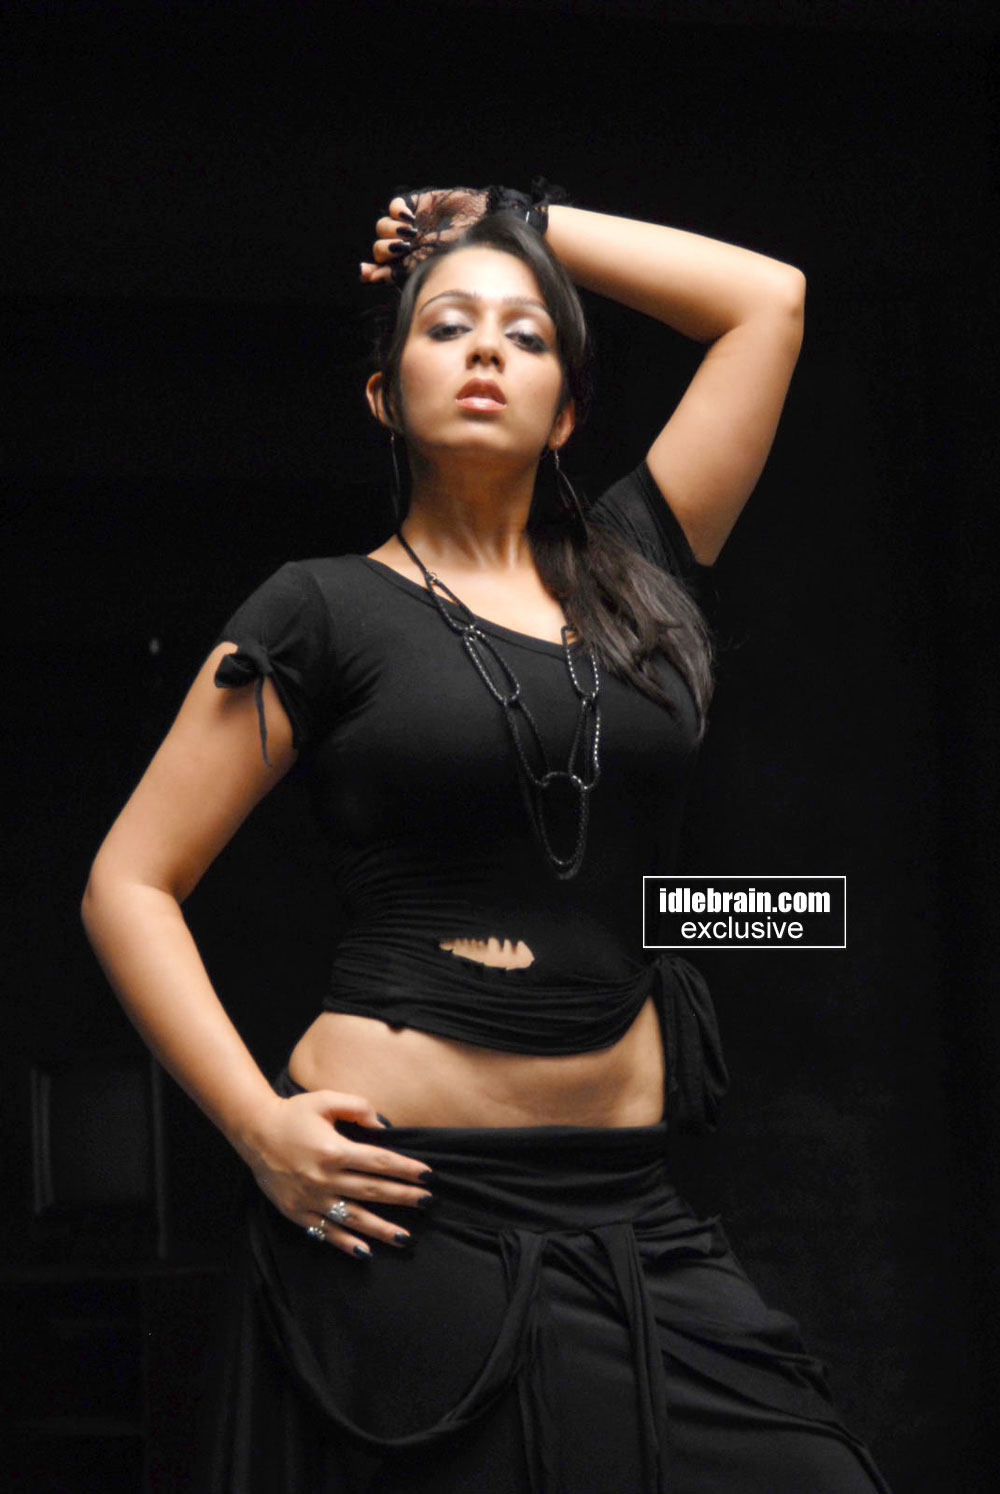 mallu actress photos tamil actress photos hot tamil actress mallu